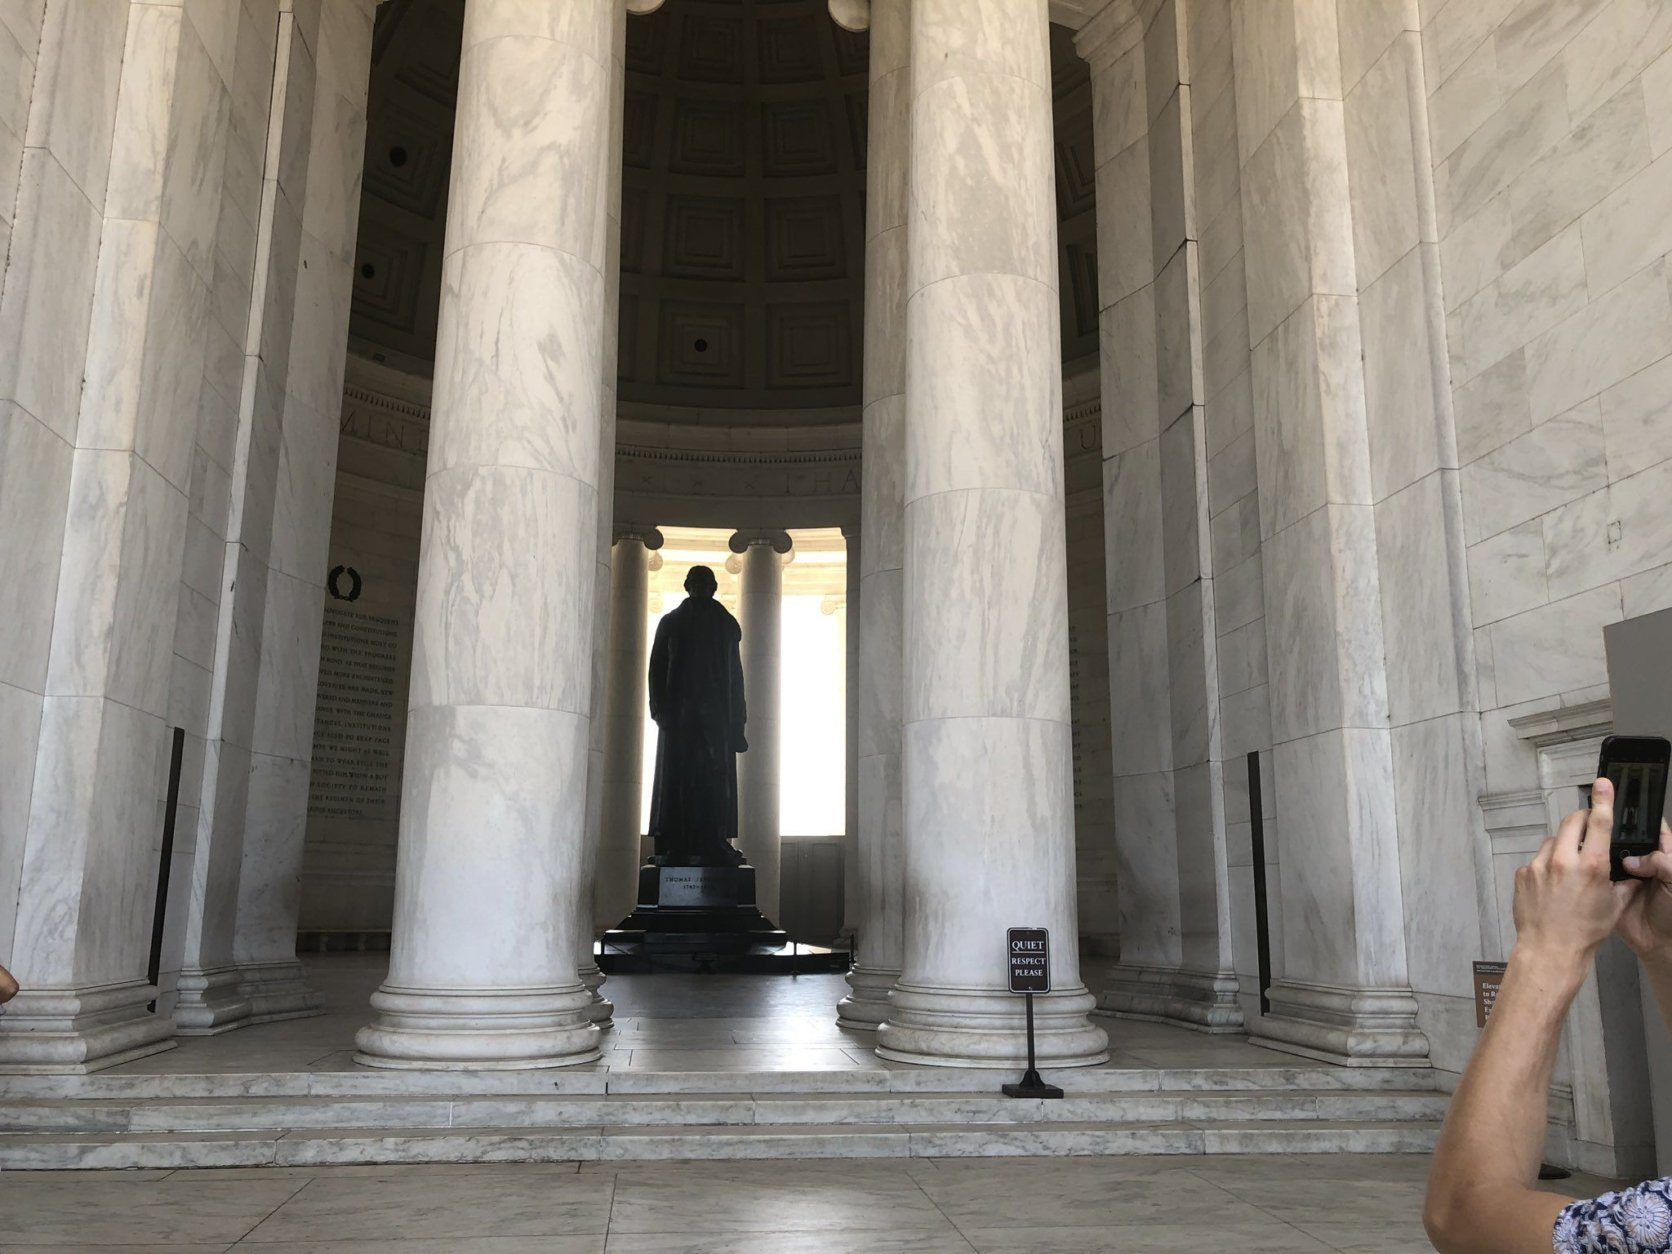 <p>The 15-month project is expected to conclude in May 2020.</p> <p>While work is underway, the monument&#8217;s inner chamber will remain open so you can see Thomas Jefferson&#8217;s statue; the elevator is running; the bathrooms are open; and the gift shop will operate as usual.</p>